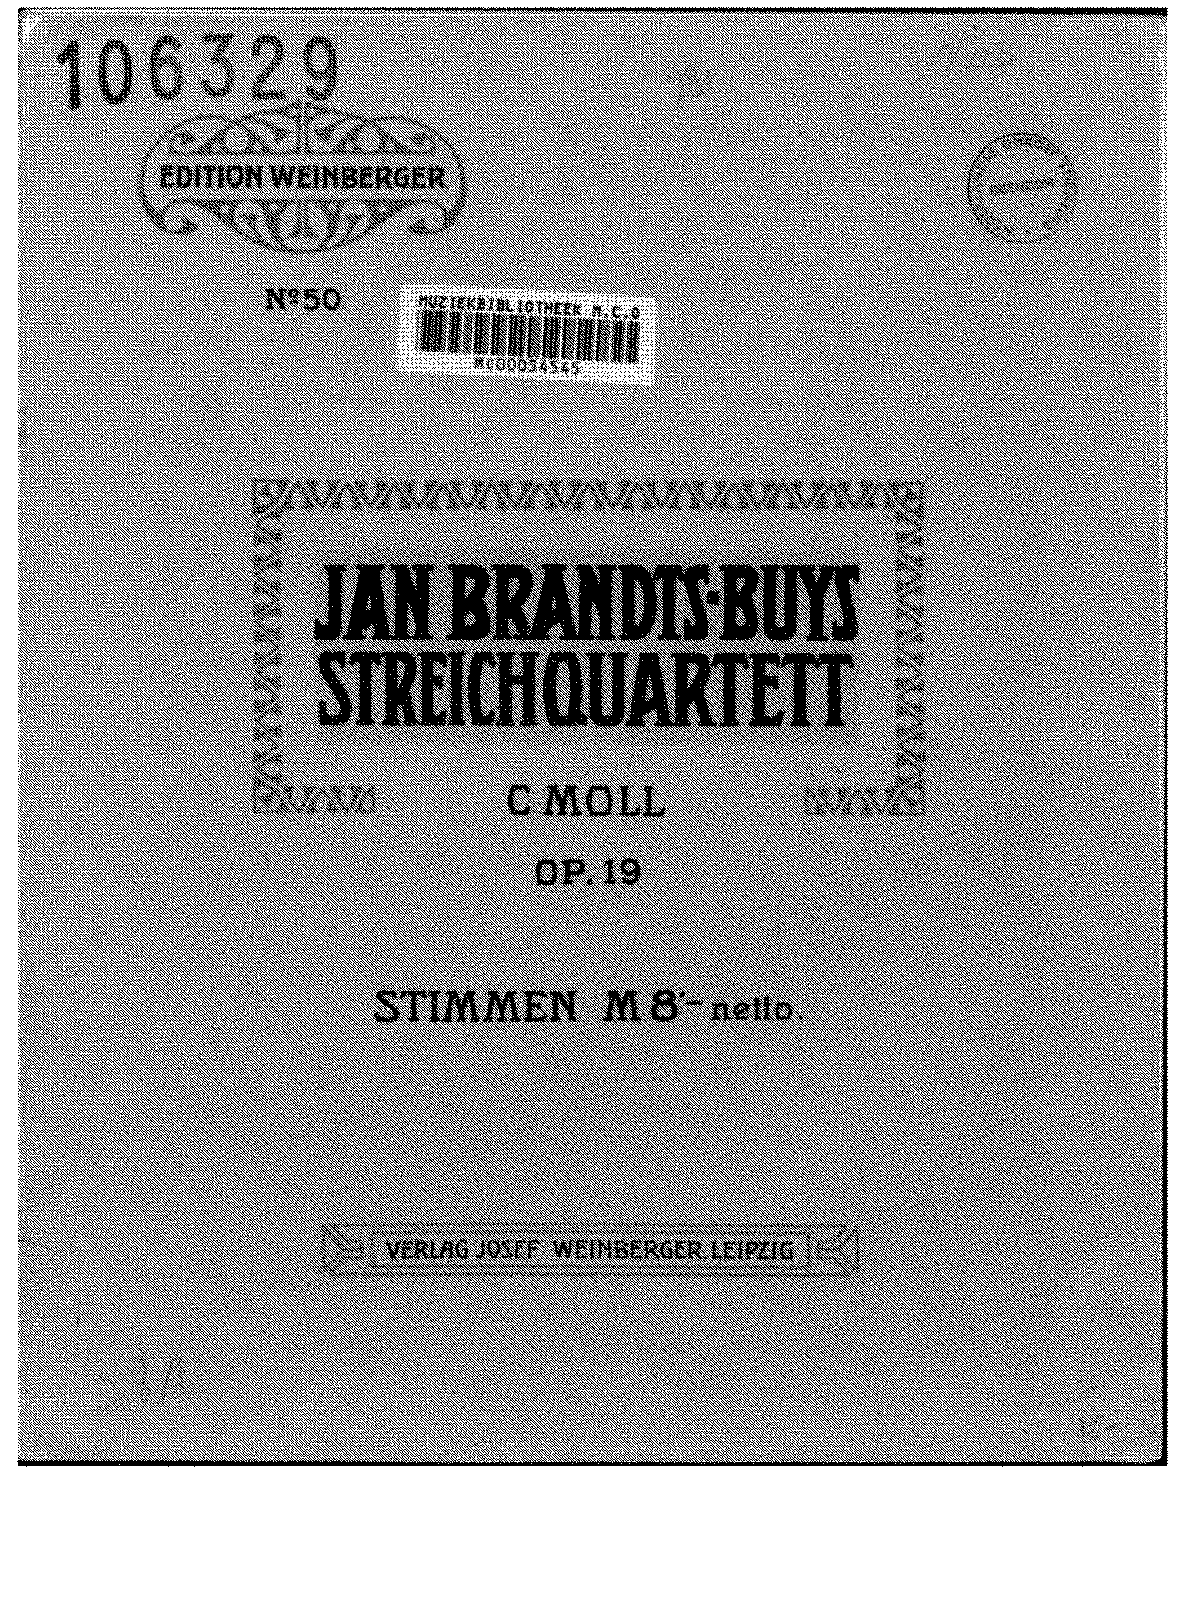 PMLP143314-Brandts-Buys - 19 - String quartet (parts).pdf